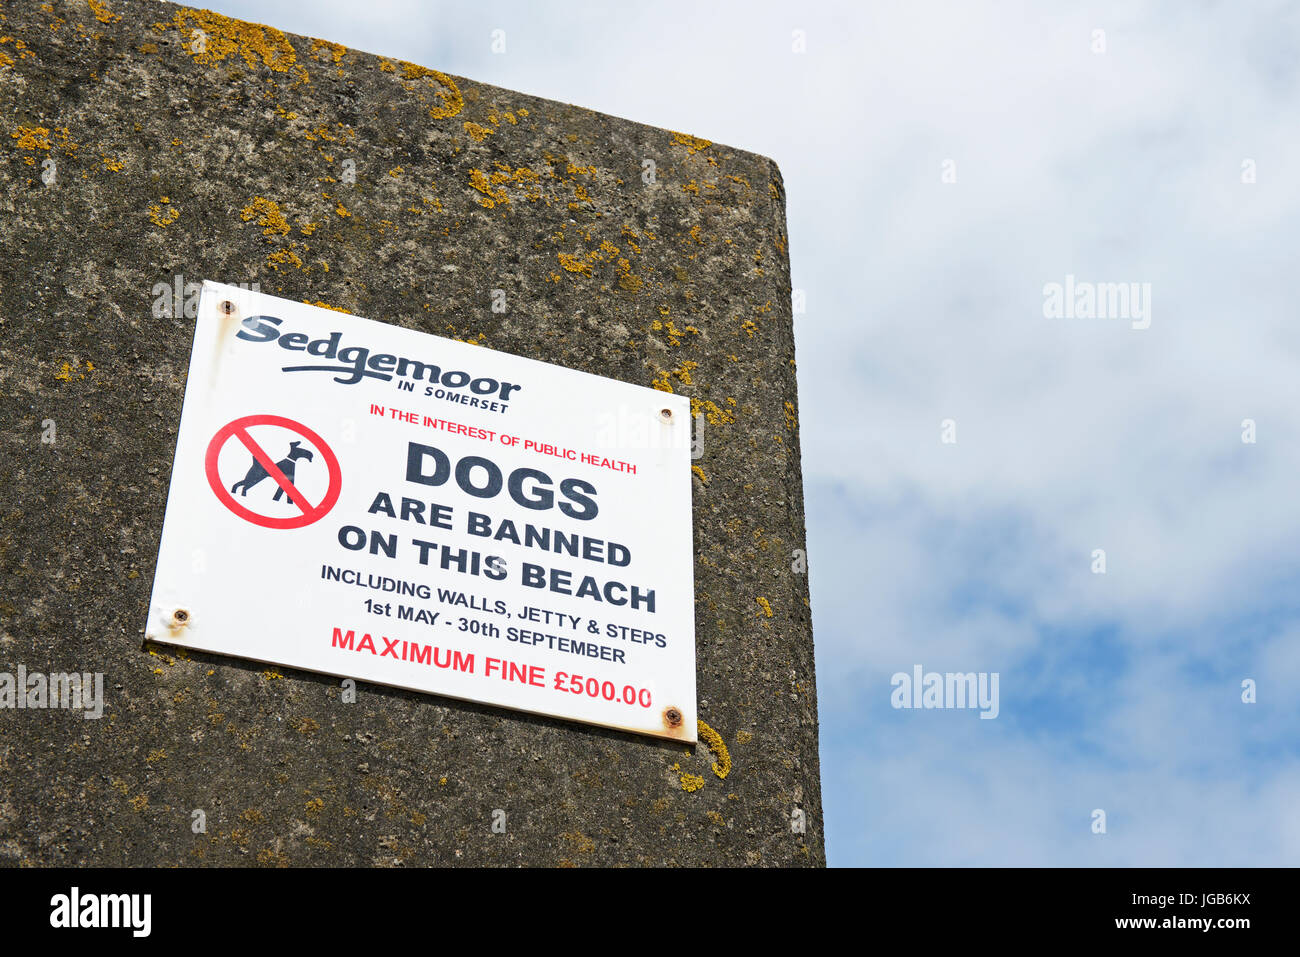 Sign warning about taking dogs on beach, England UK Stock Photo